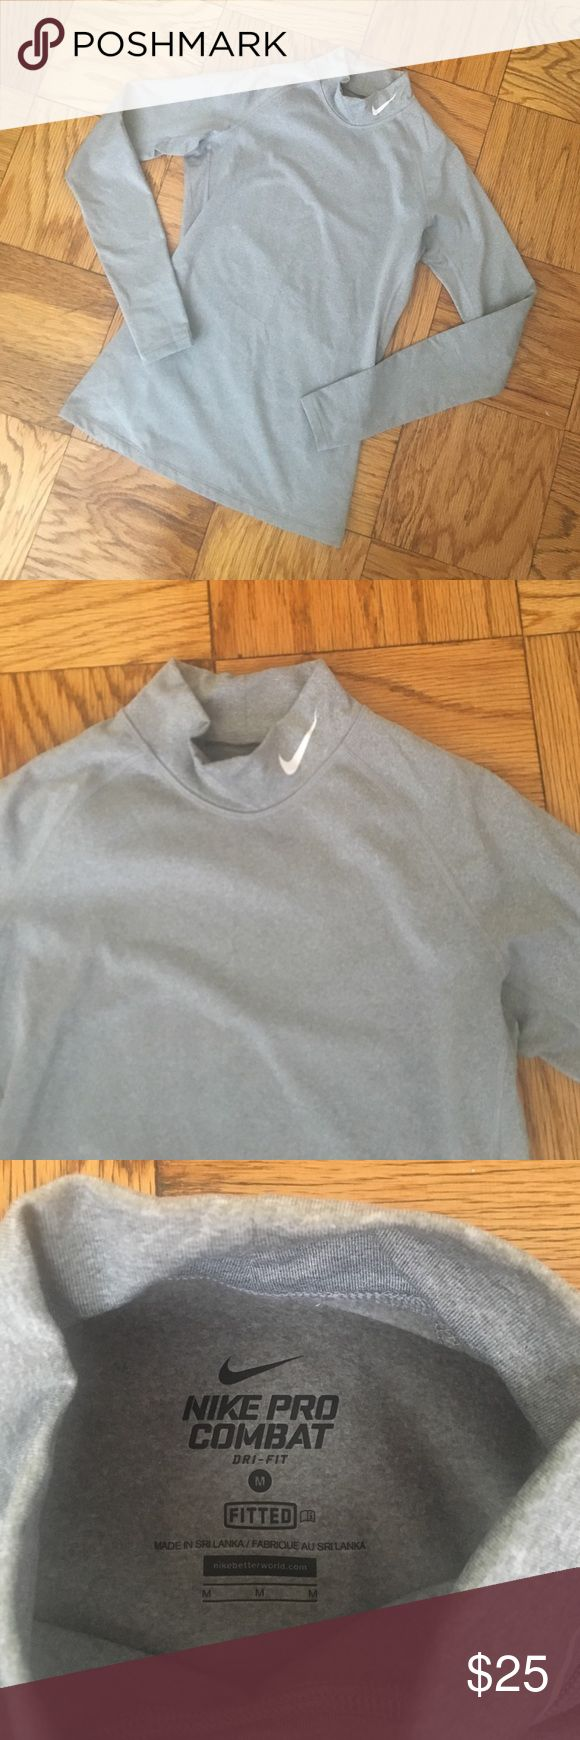 Nike Pro Combat Dri Fit fitted Mock Turtleneck SzM Nike Pro Combat Dri-Fit Fitted Mock Neck Turtleneck Long sleeve. Gray color. Has thumb holes. Great for running outside or skiing. Very warm! Worn once max - in perfect condition. Size Medium. Nike Tops Tees - Long Sleeve